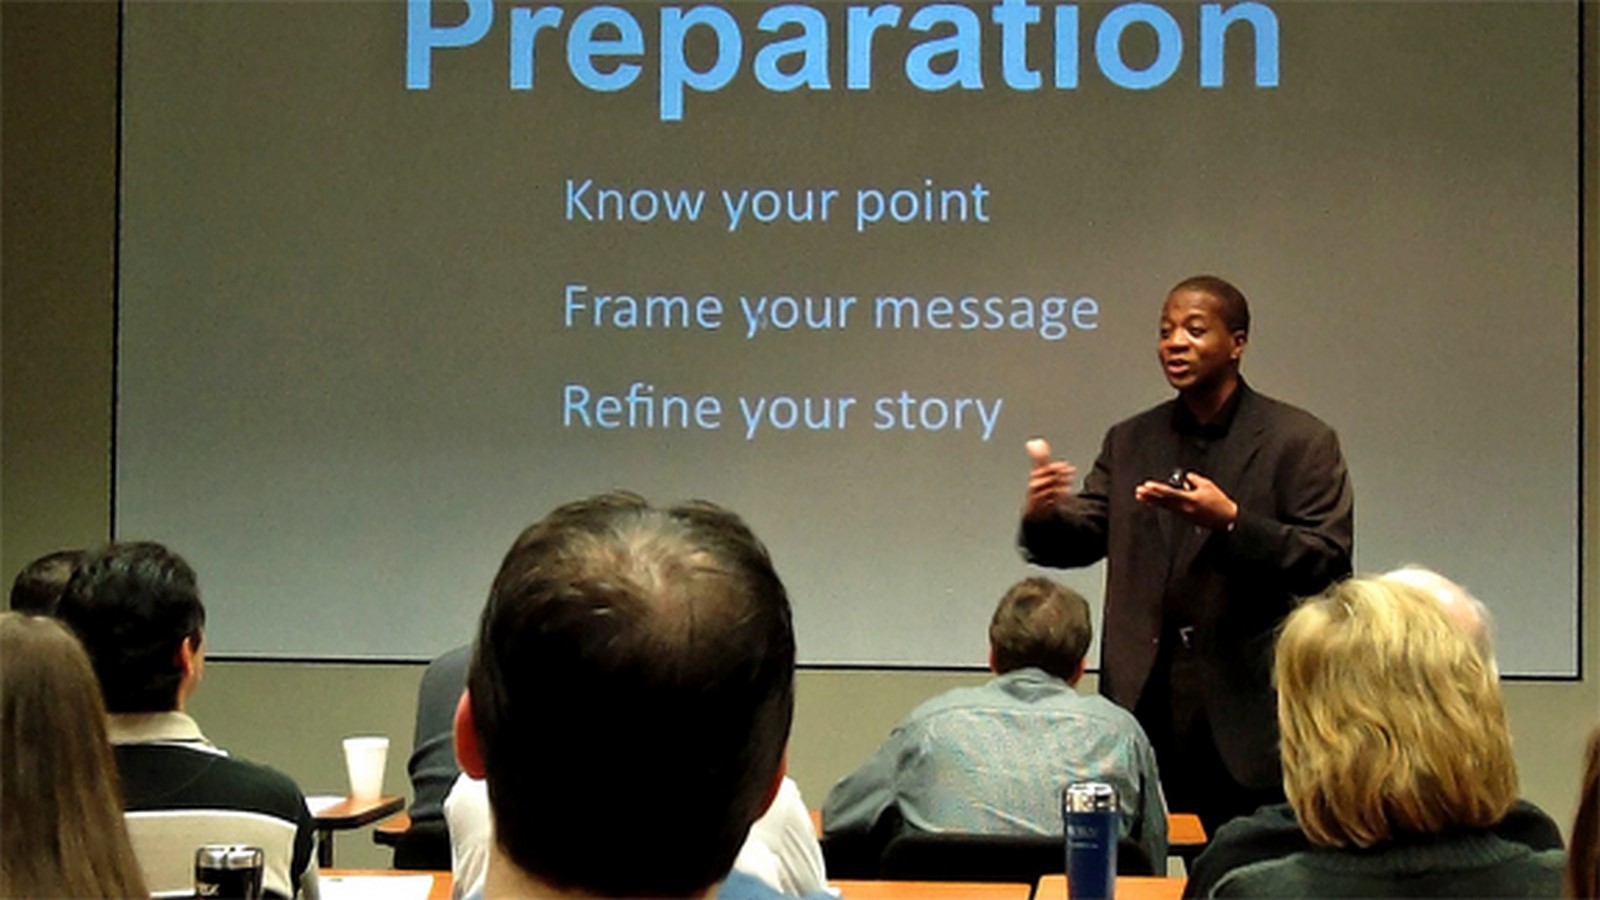 10 Things you can do to master presentation skills in college - Sheet13